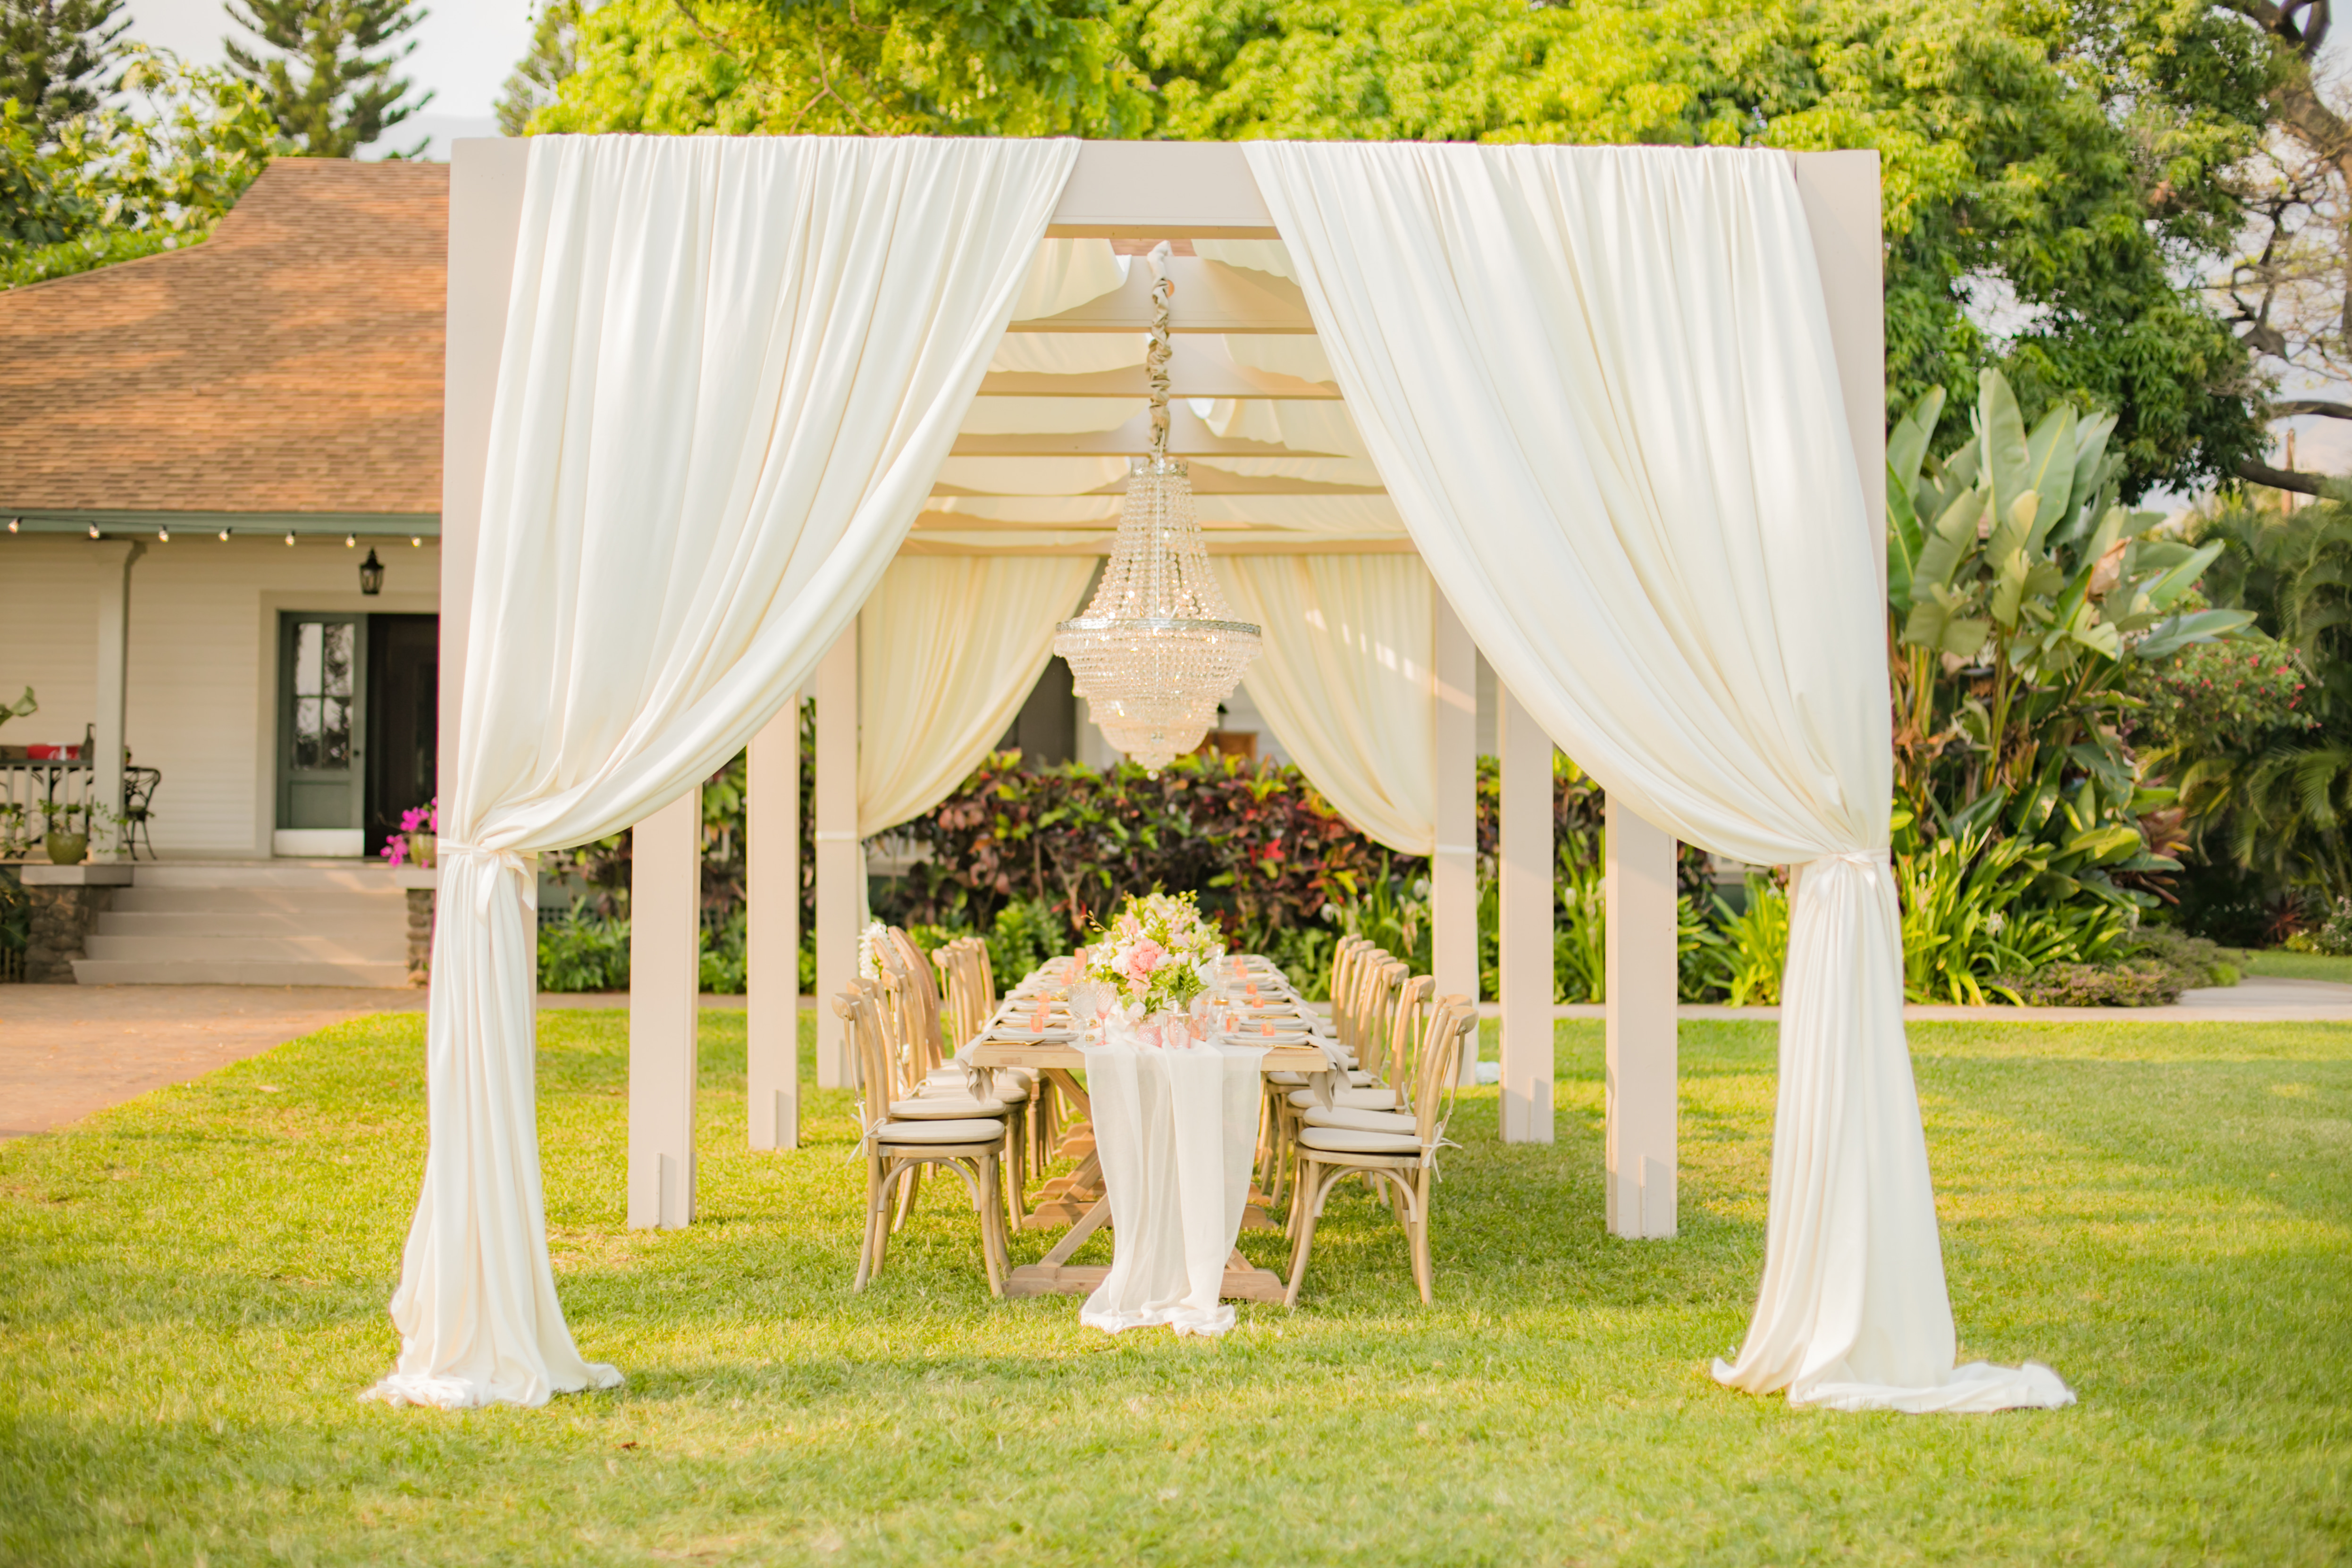 Maui Wedding Canopy | Destination Wedding in Maui | Maui Wedding Planner | Maui's Angels blog